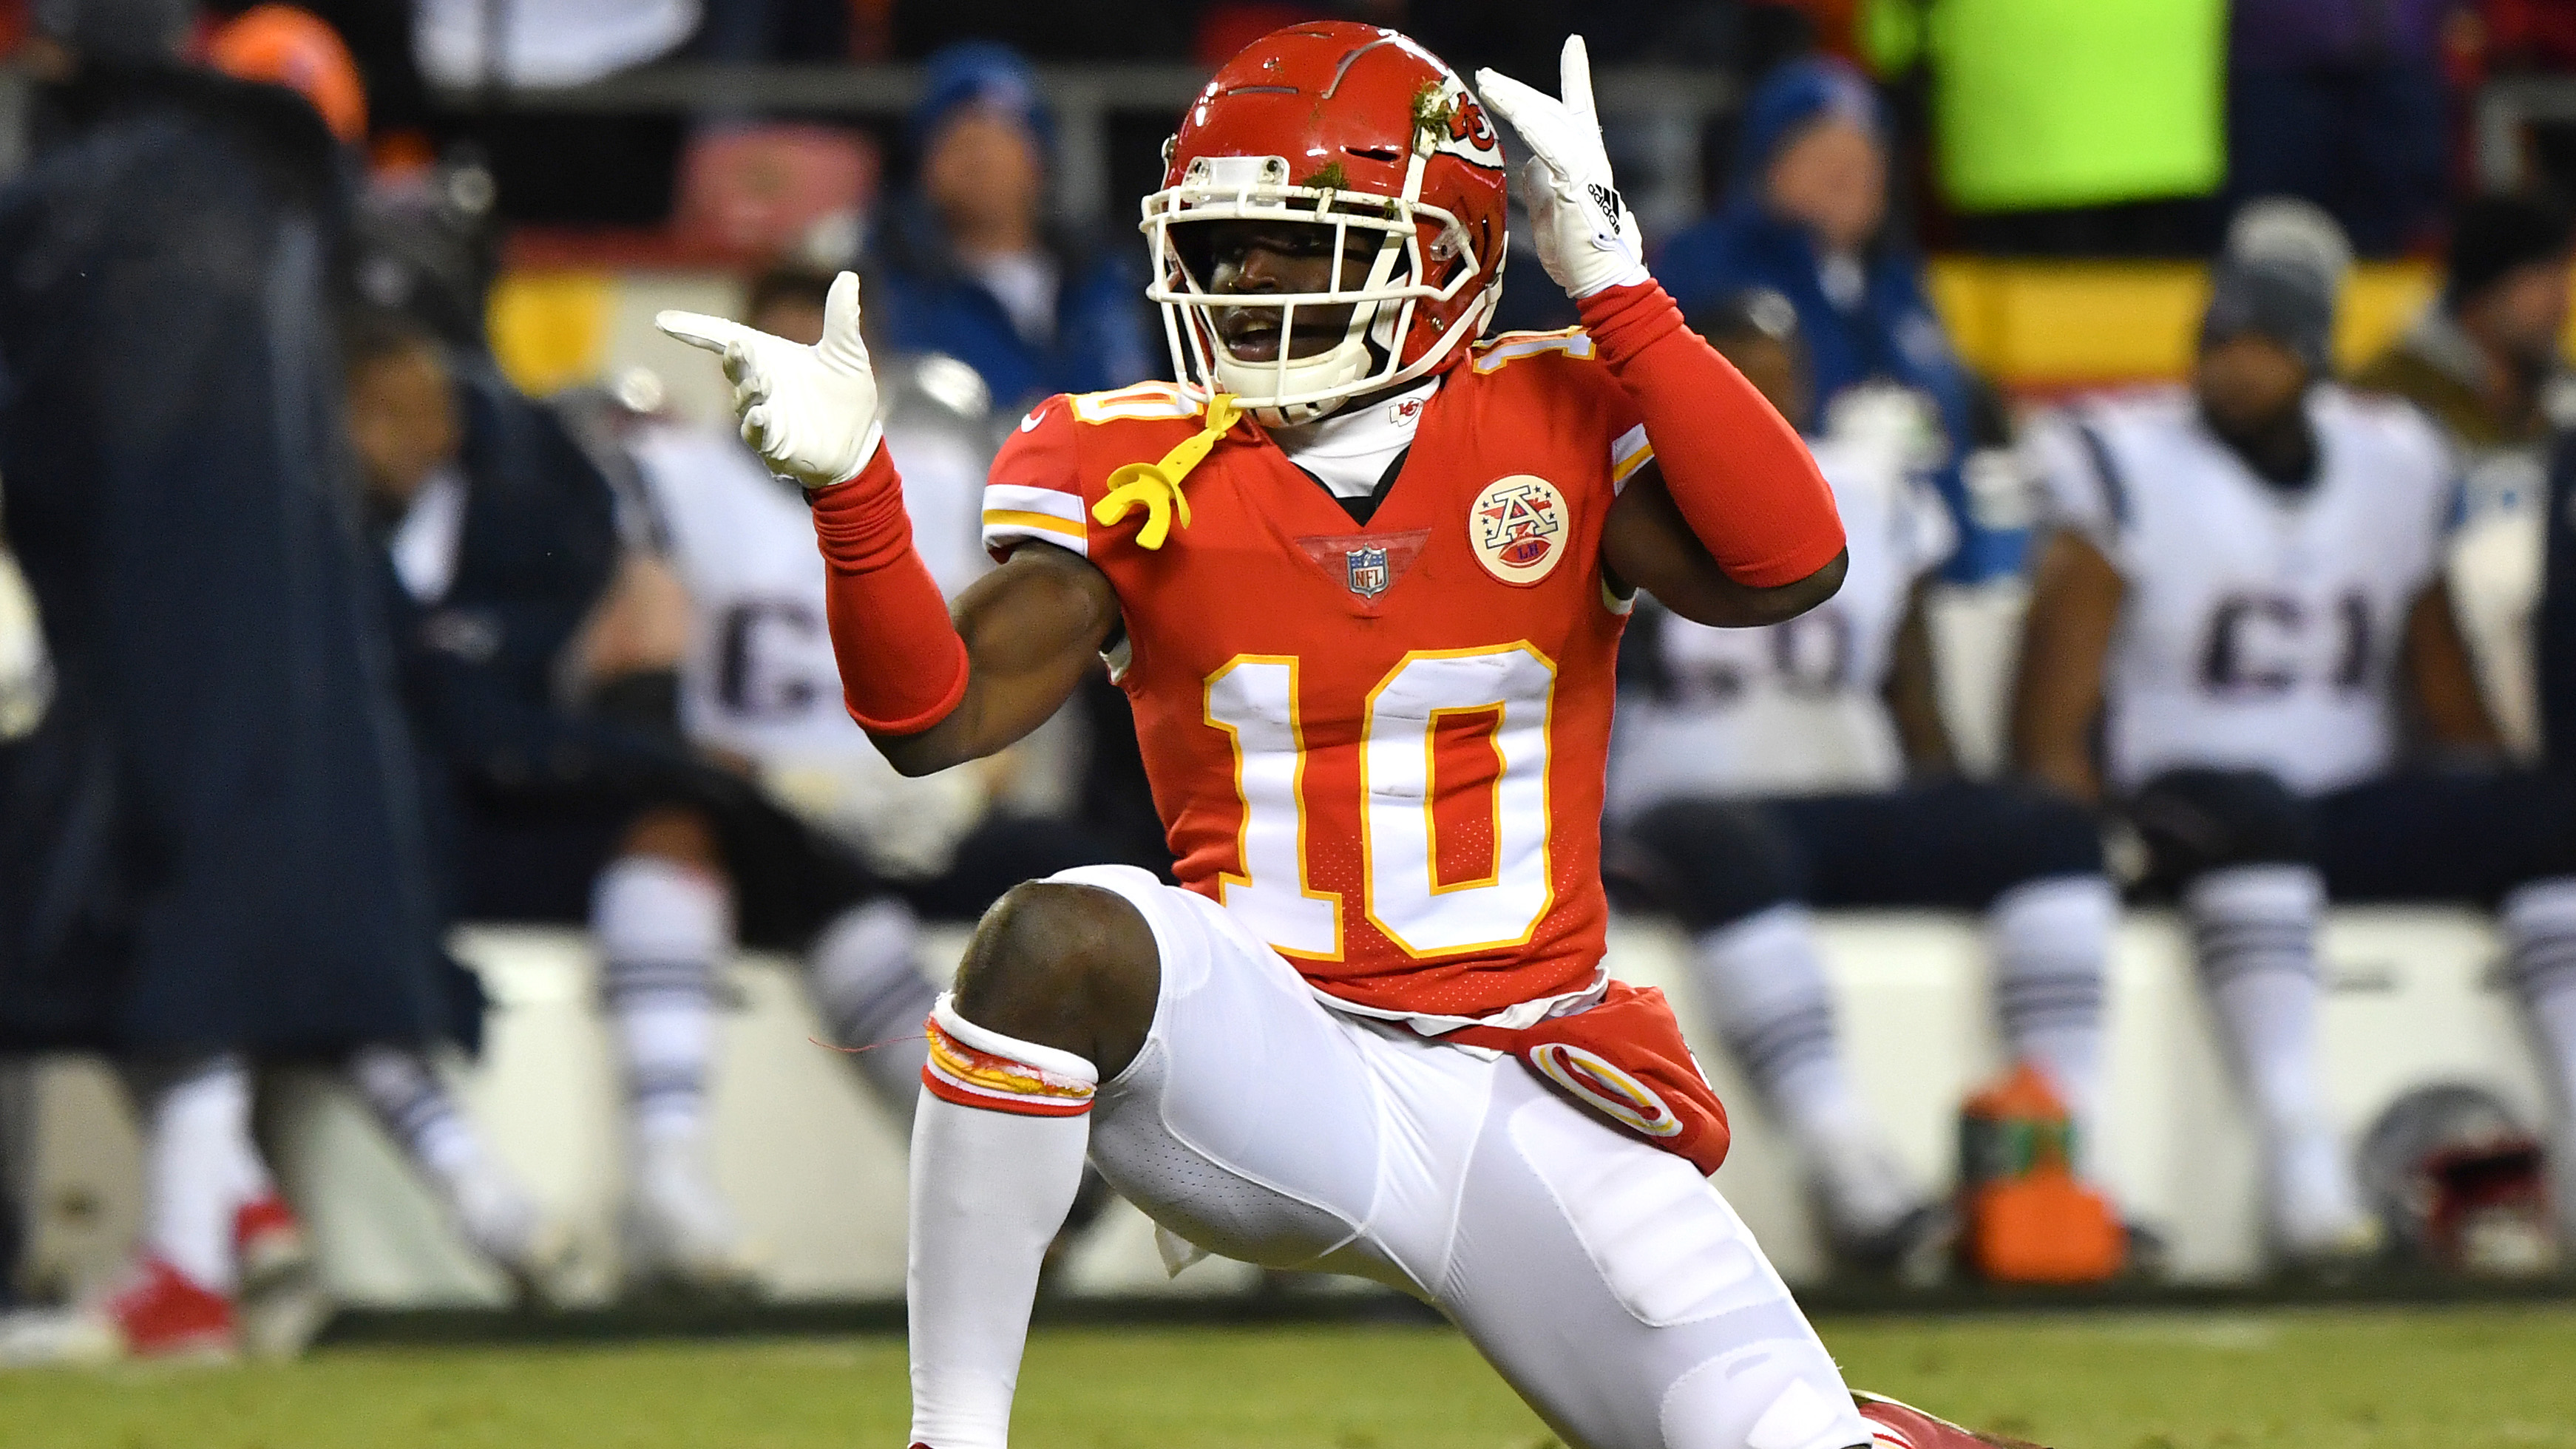 Tyreek Hill situation showcases flaw in NFL discipline protocol